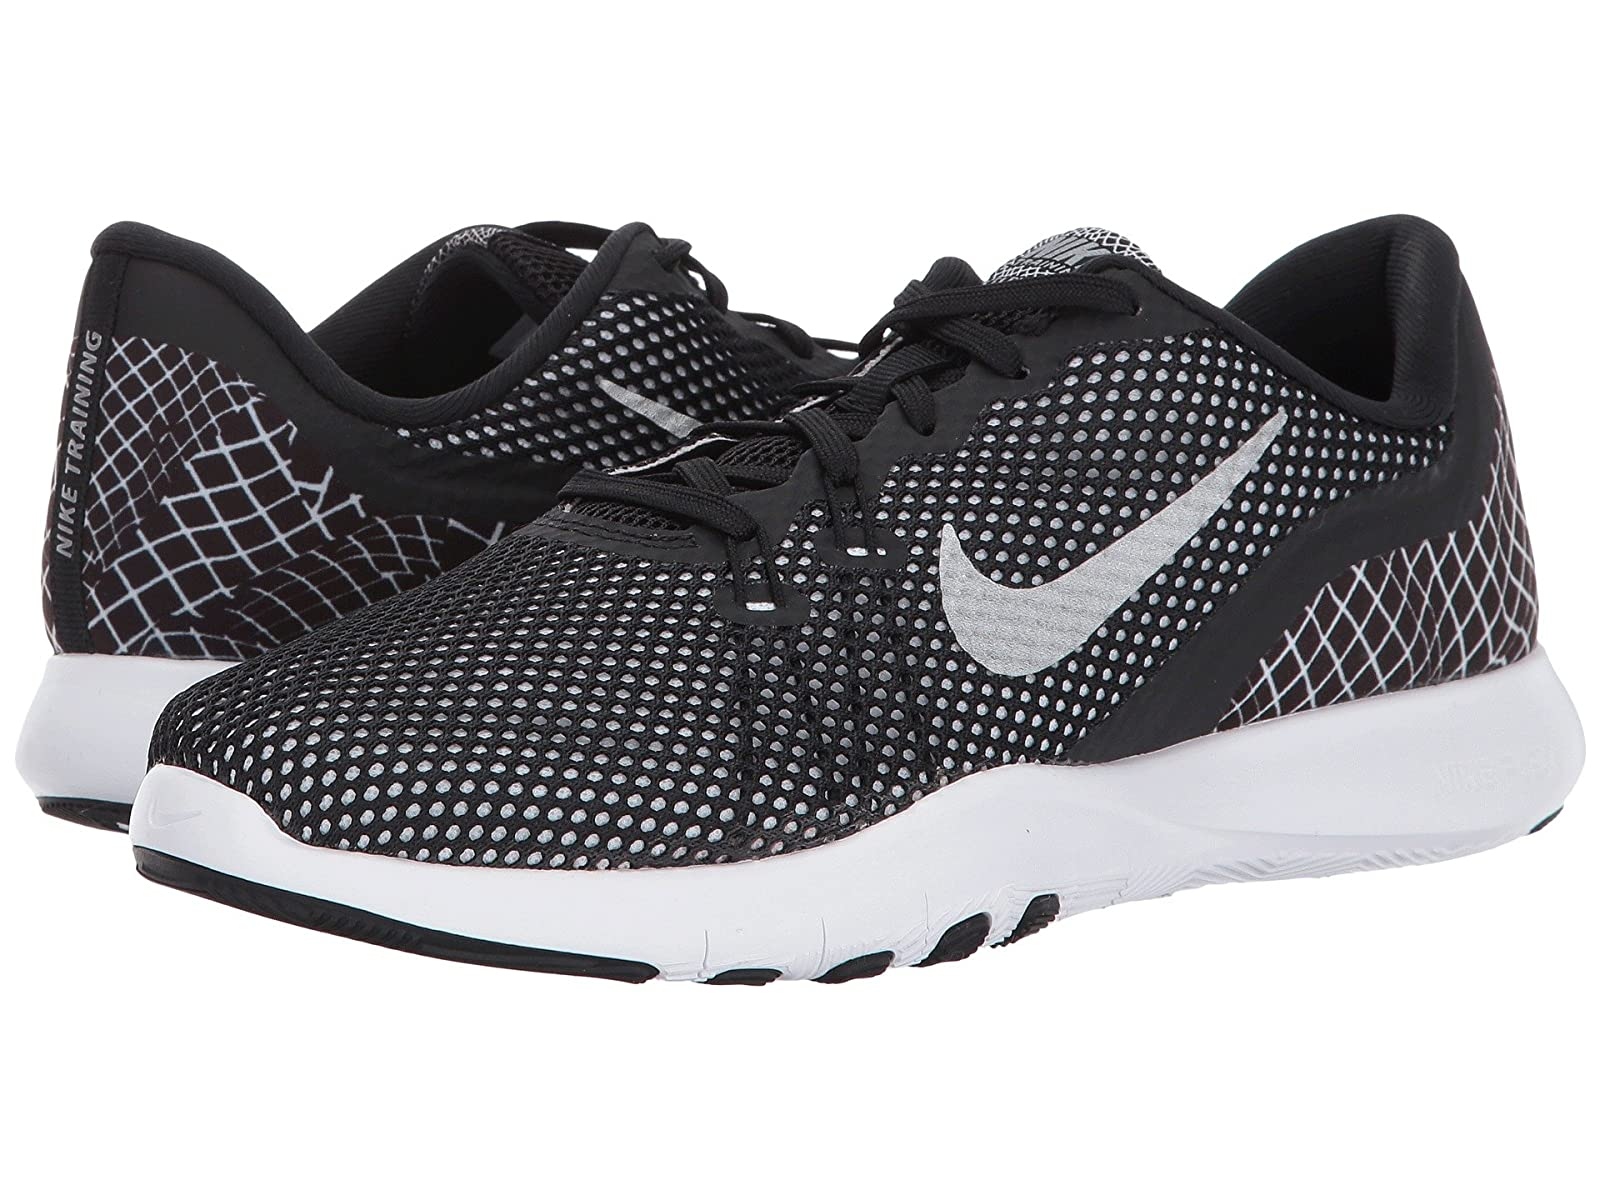 Nike Flex Trainer 7 PrintCheap and distinctive eye-catching shoes